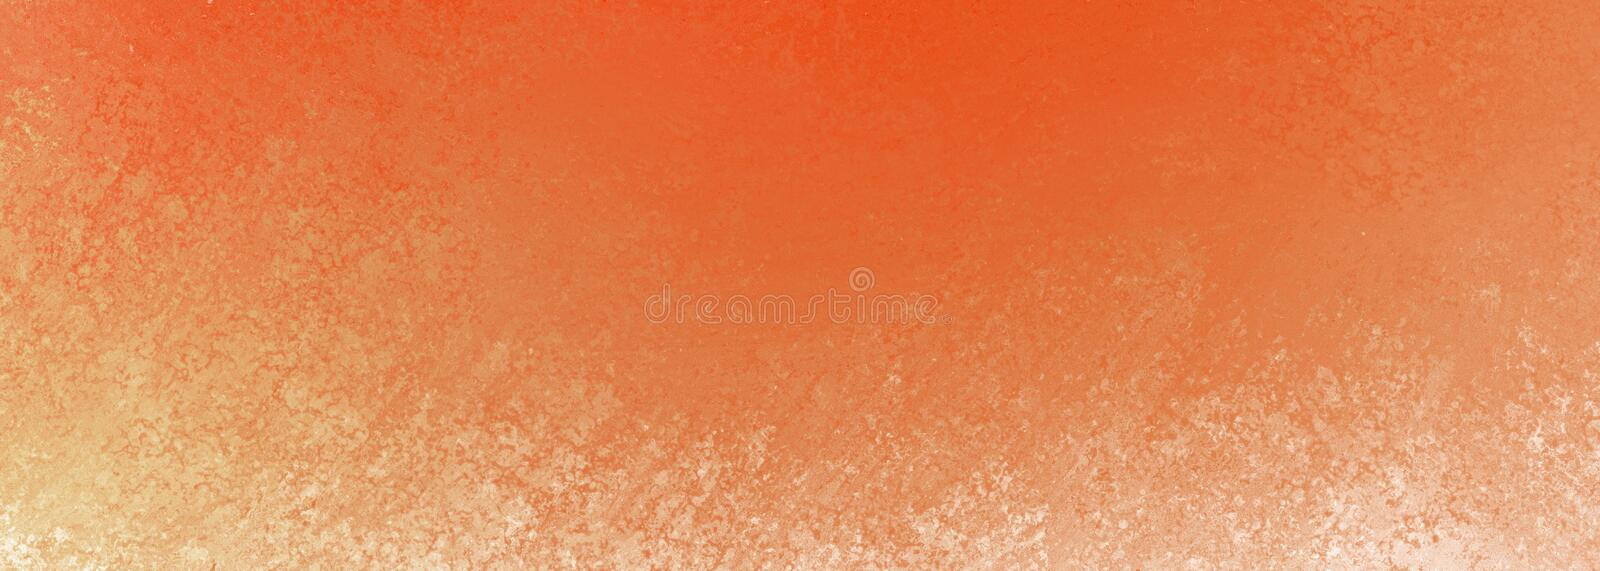 Burnt orange background with white grunge border design and texture, rustic warm color scheme vector illustration